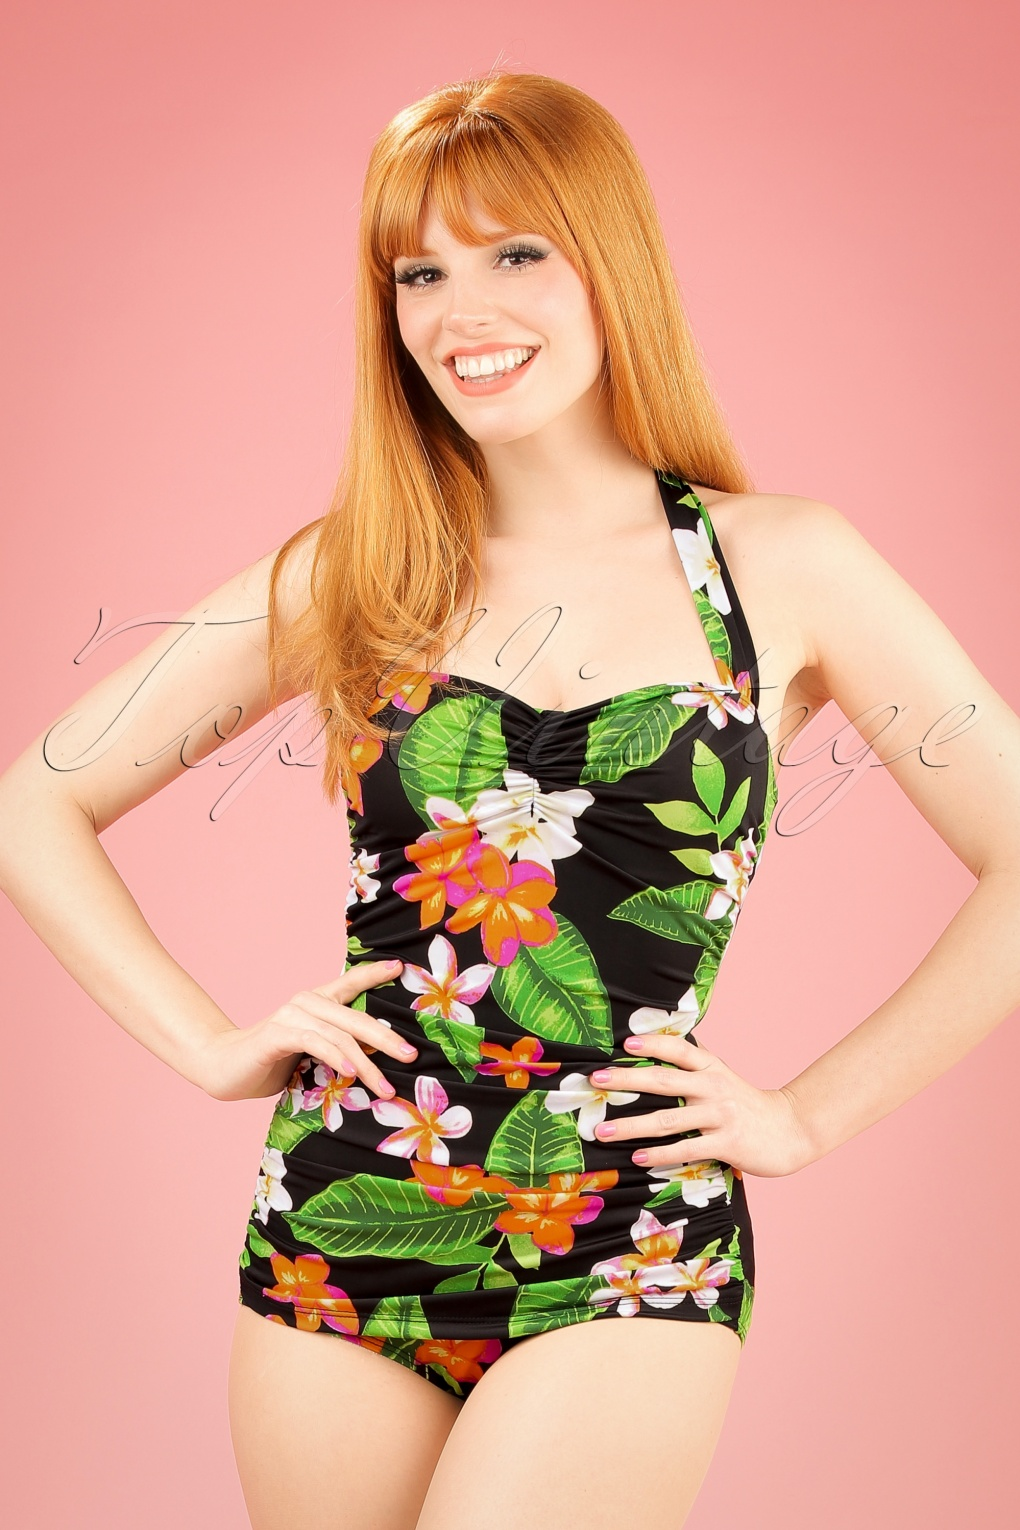 Vintage Inspired Retro Swimsuits 50s Classic Sheat Floral Swimsuit in Black £90.19 AT vintagedancer.com